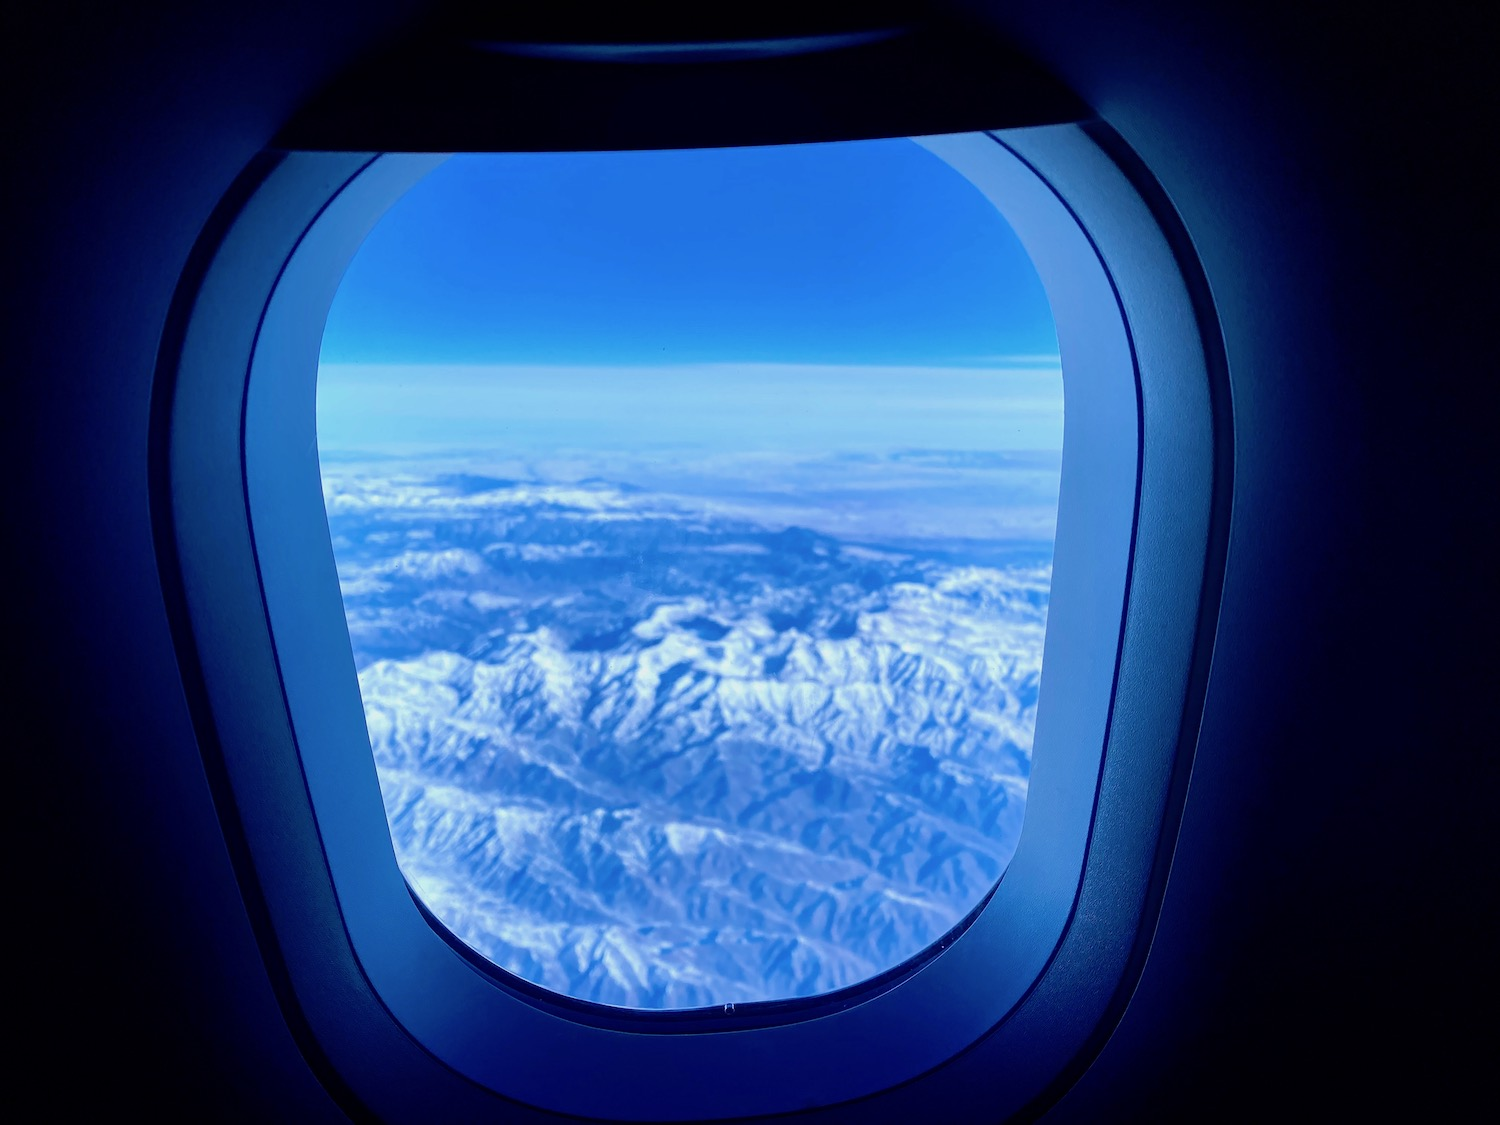 A view through an airplane window looking out at mountains covered in snow.